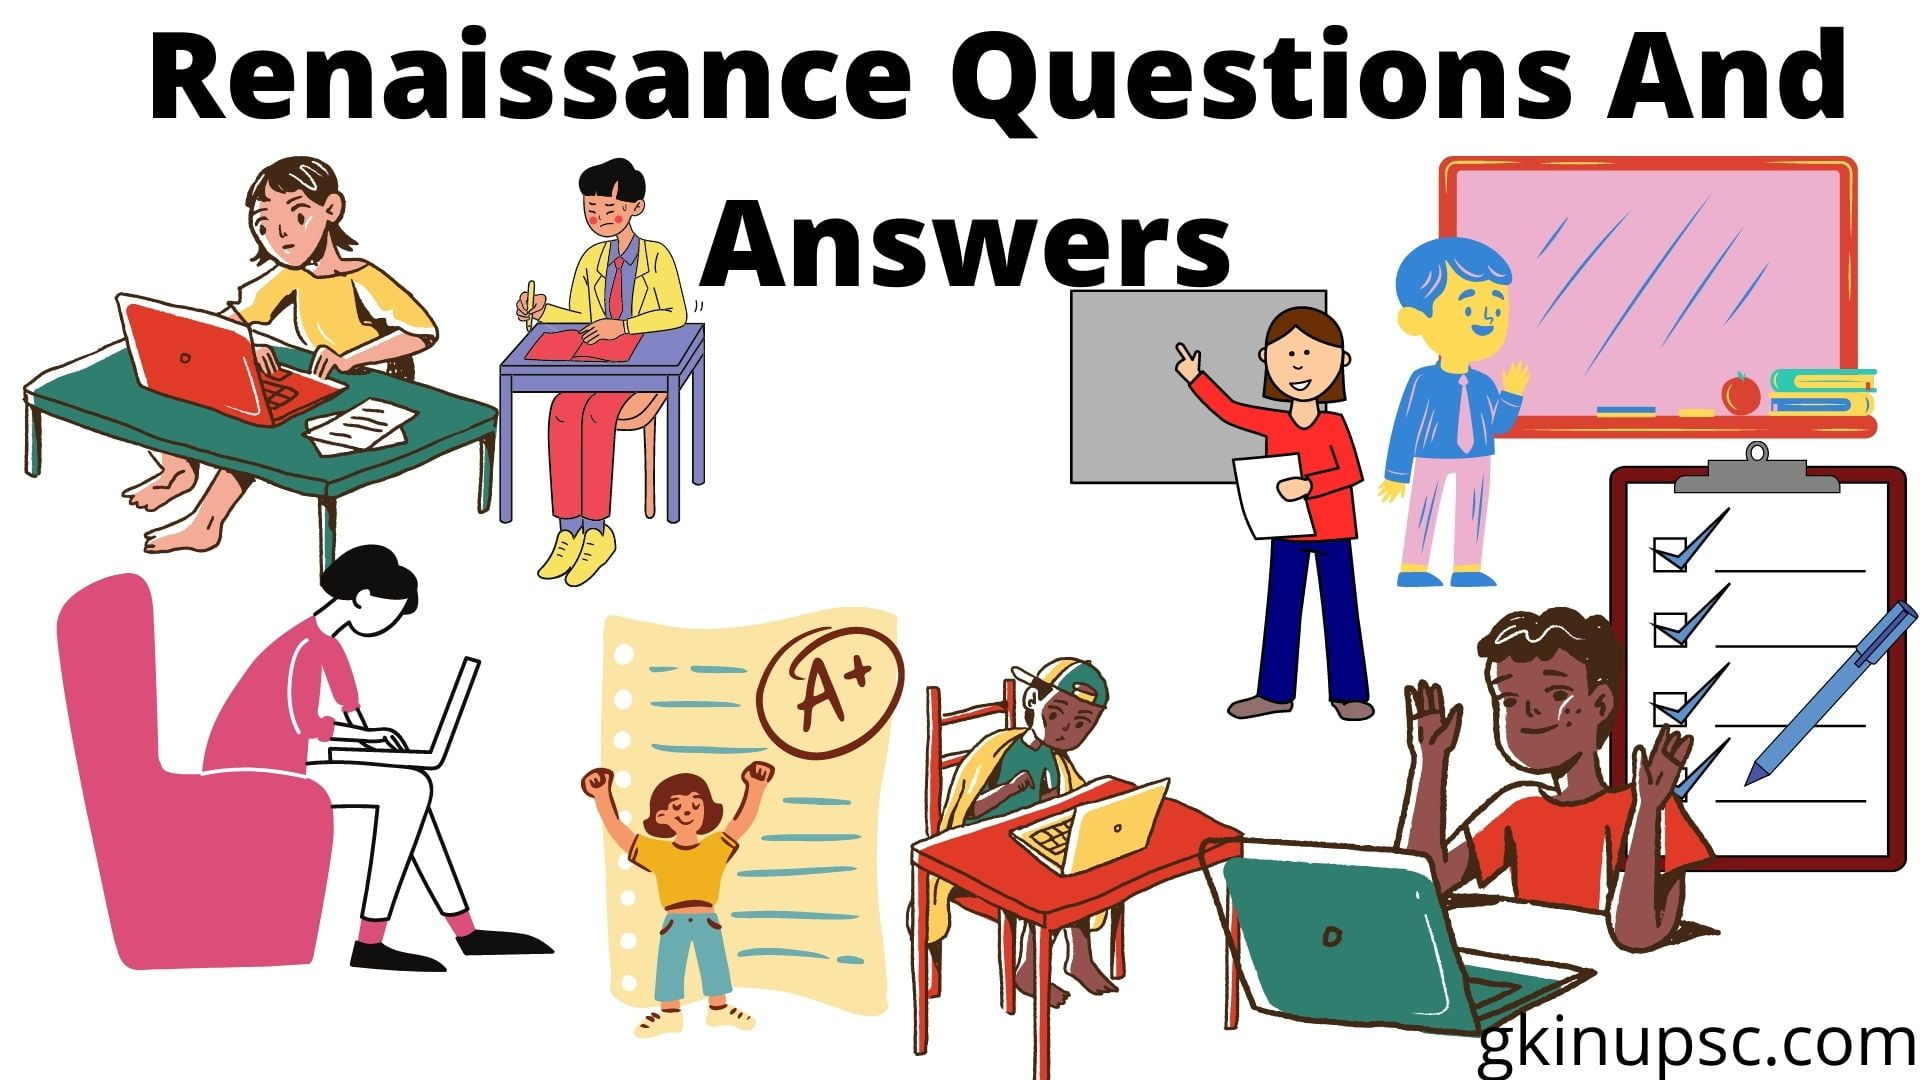 Renaissance Questions And Answers